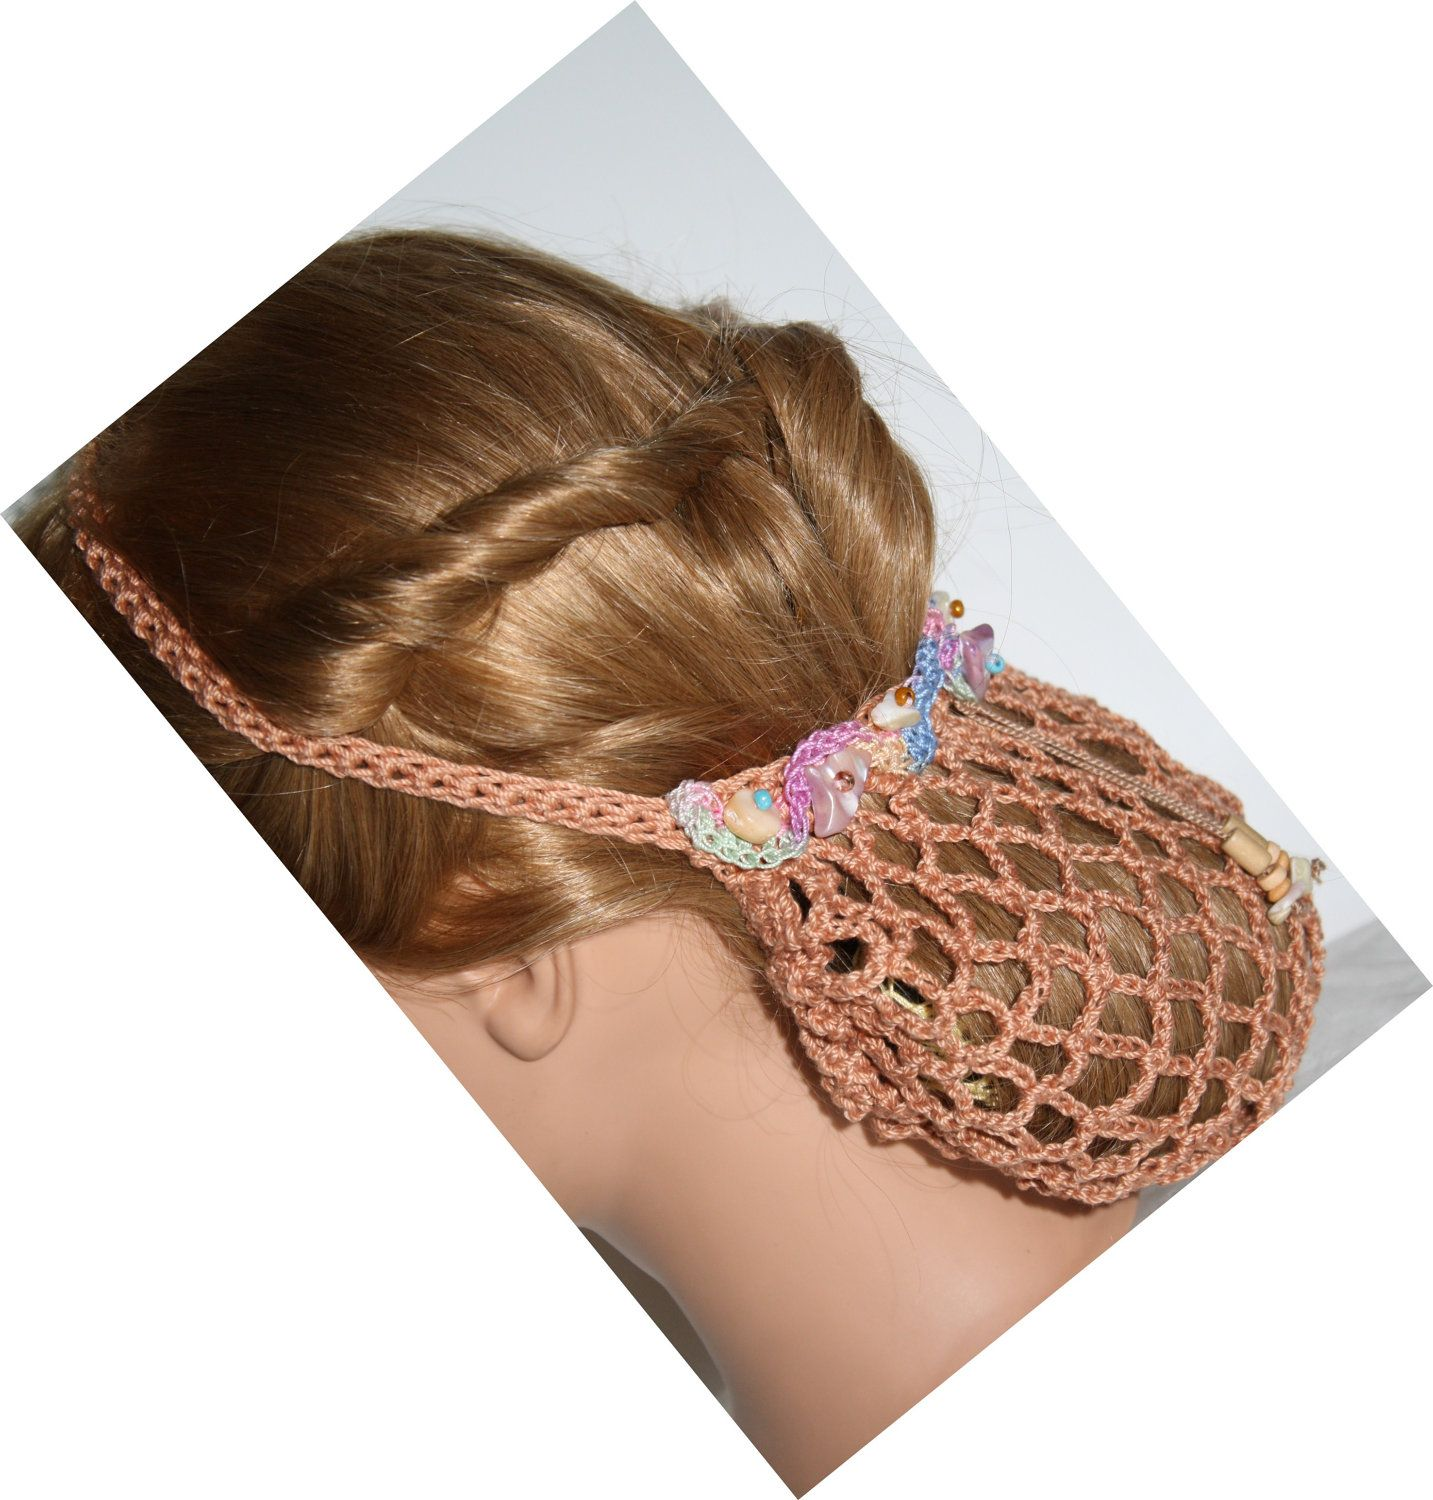 Old Fashion Hair Nets Coral 1940s Style Fashioned Into 2012 Hair Net Bride Wedding Party Old Fashioned Hairstyles Hair Nets Pretty Hairstyles